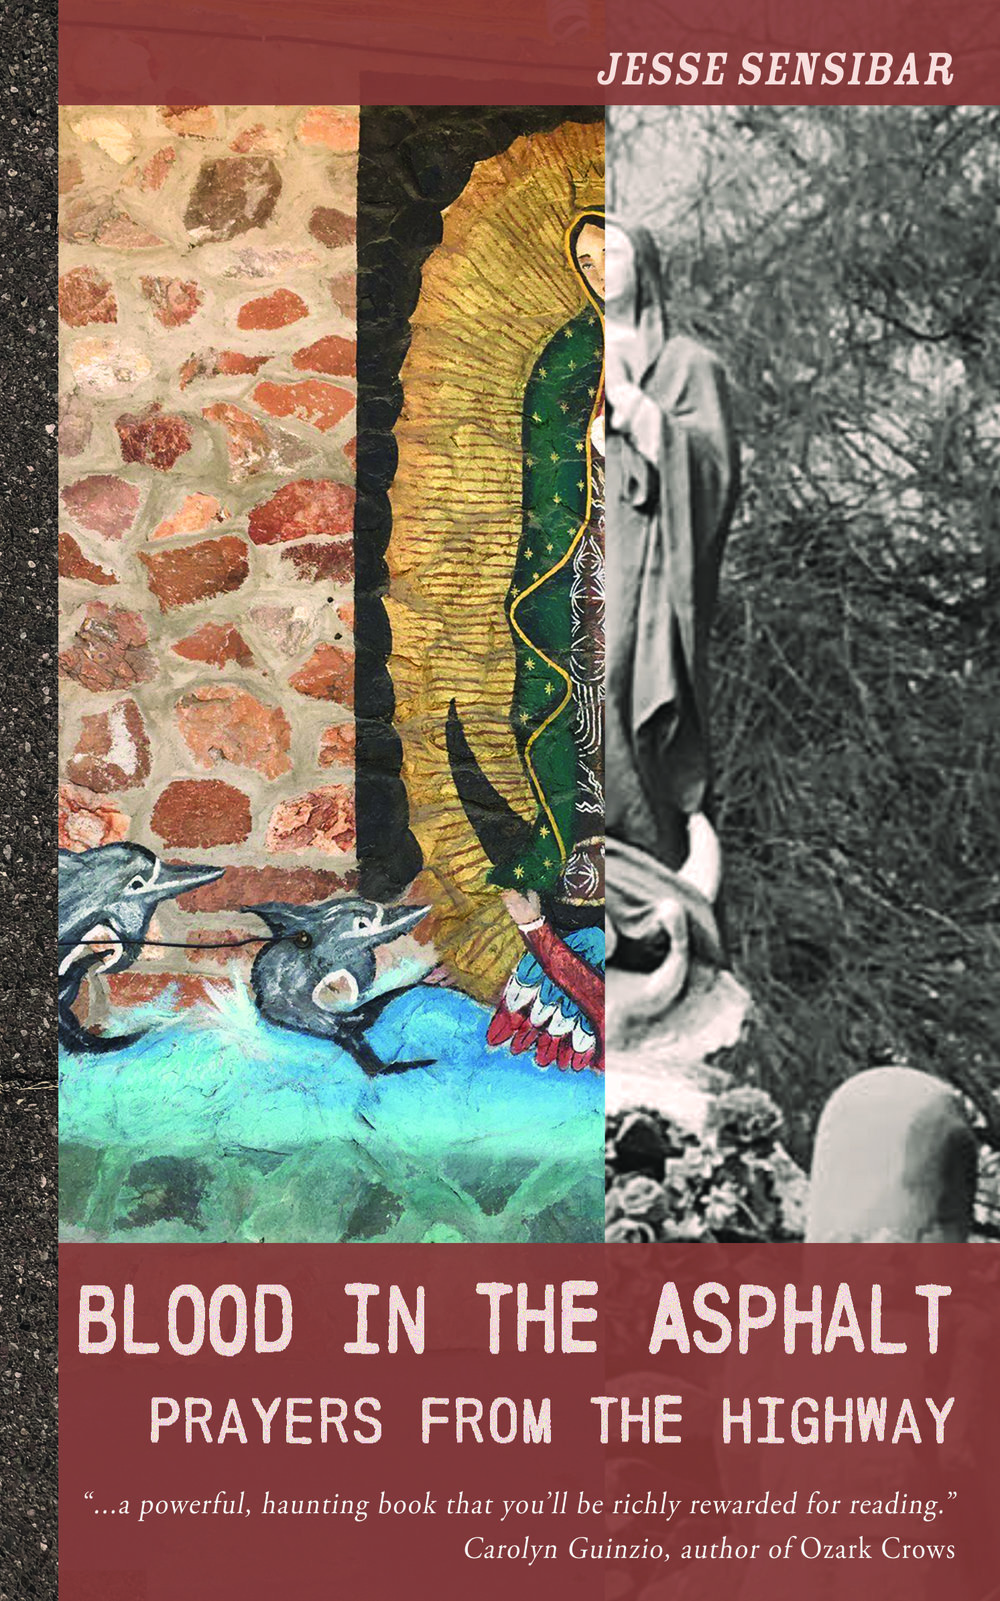 Blood In the Asphalt:Prayers From the Highwayphotos, stories, and poetry by Jesse Sensibar - Release Date October 16th, 2018